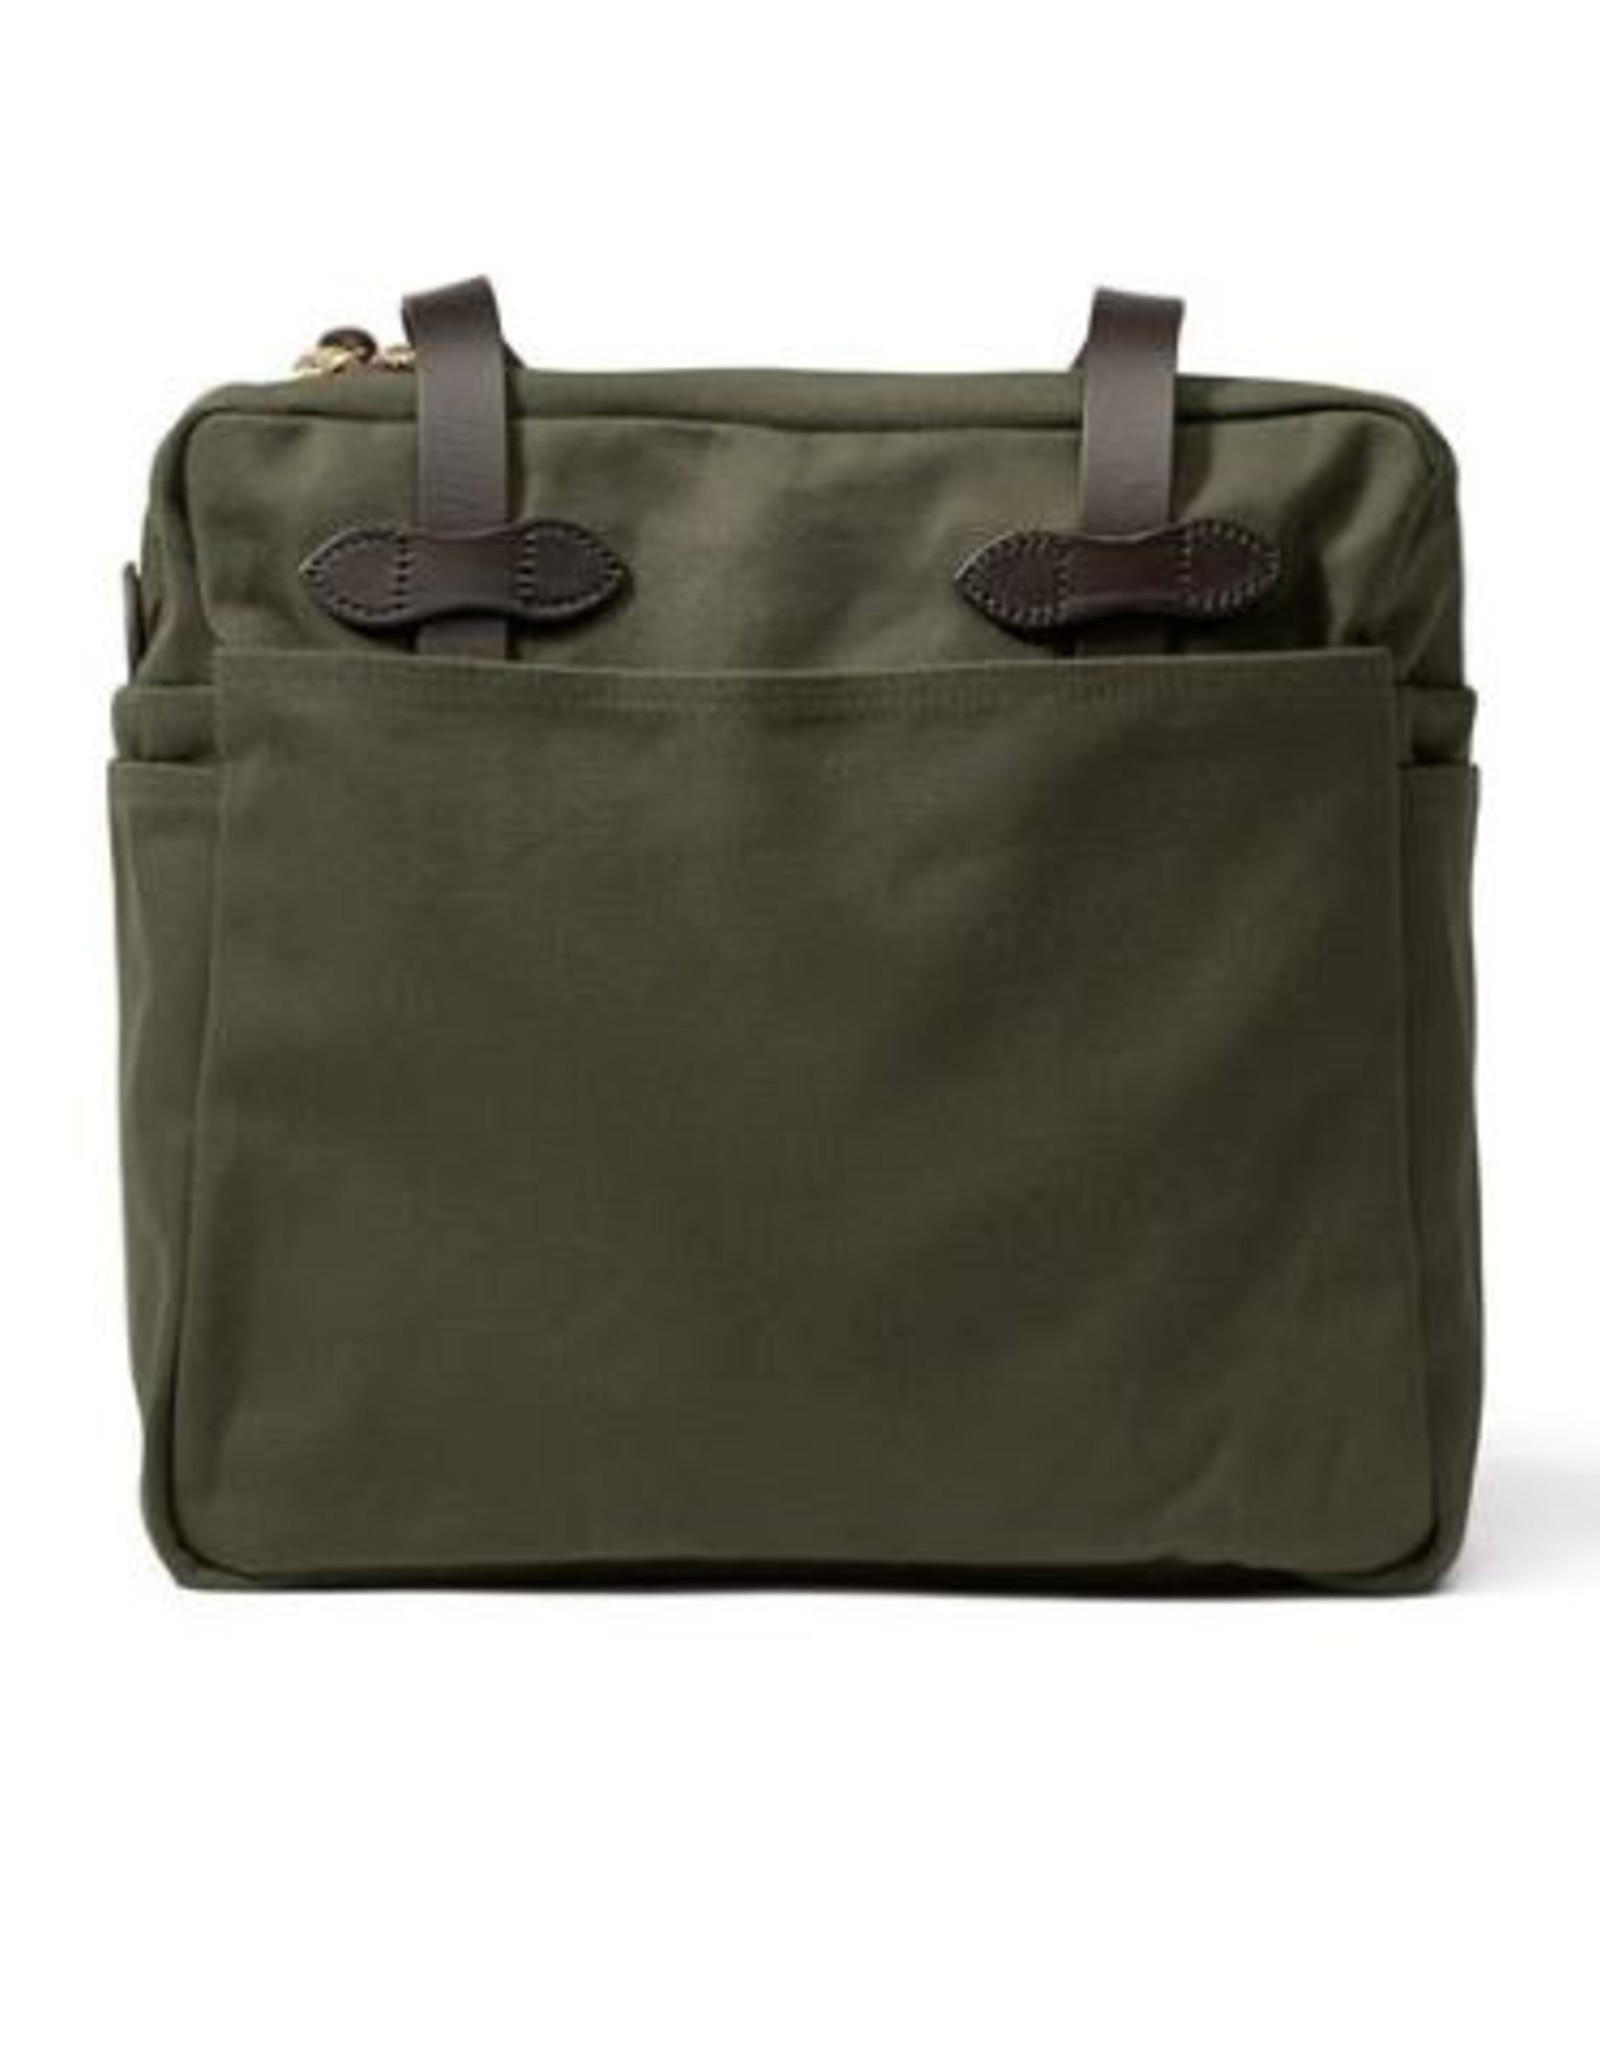 FILSON FILSON Tote Bag with Zipper